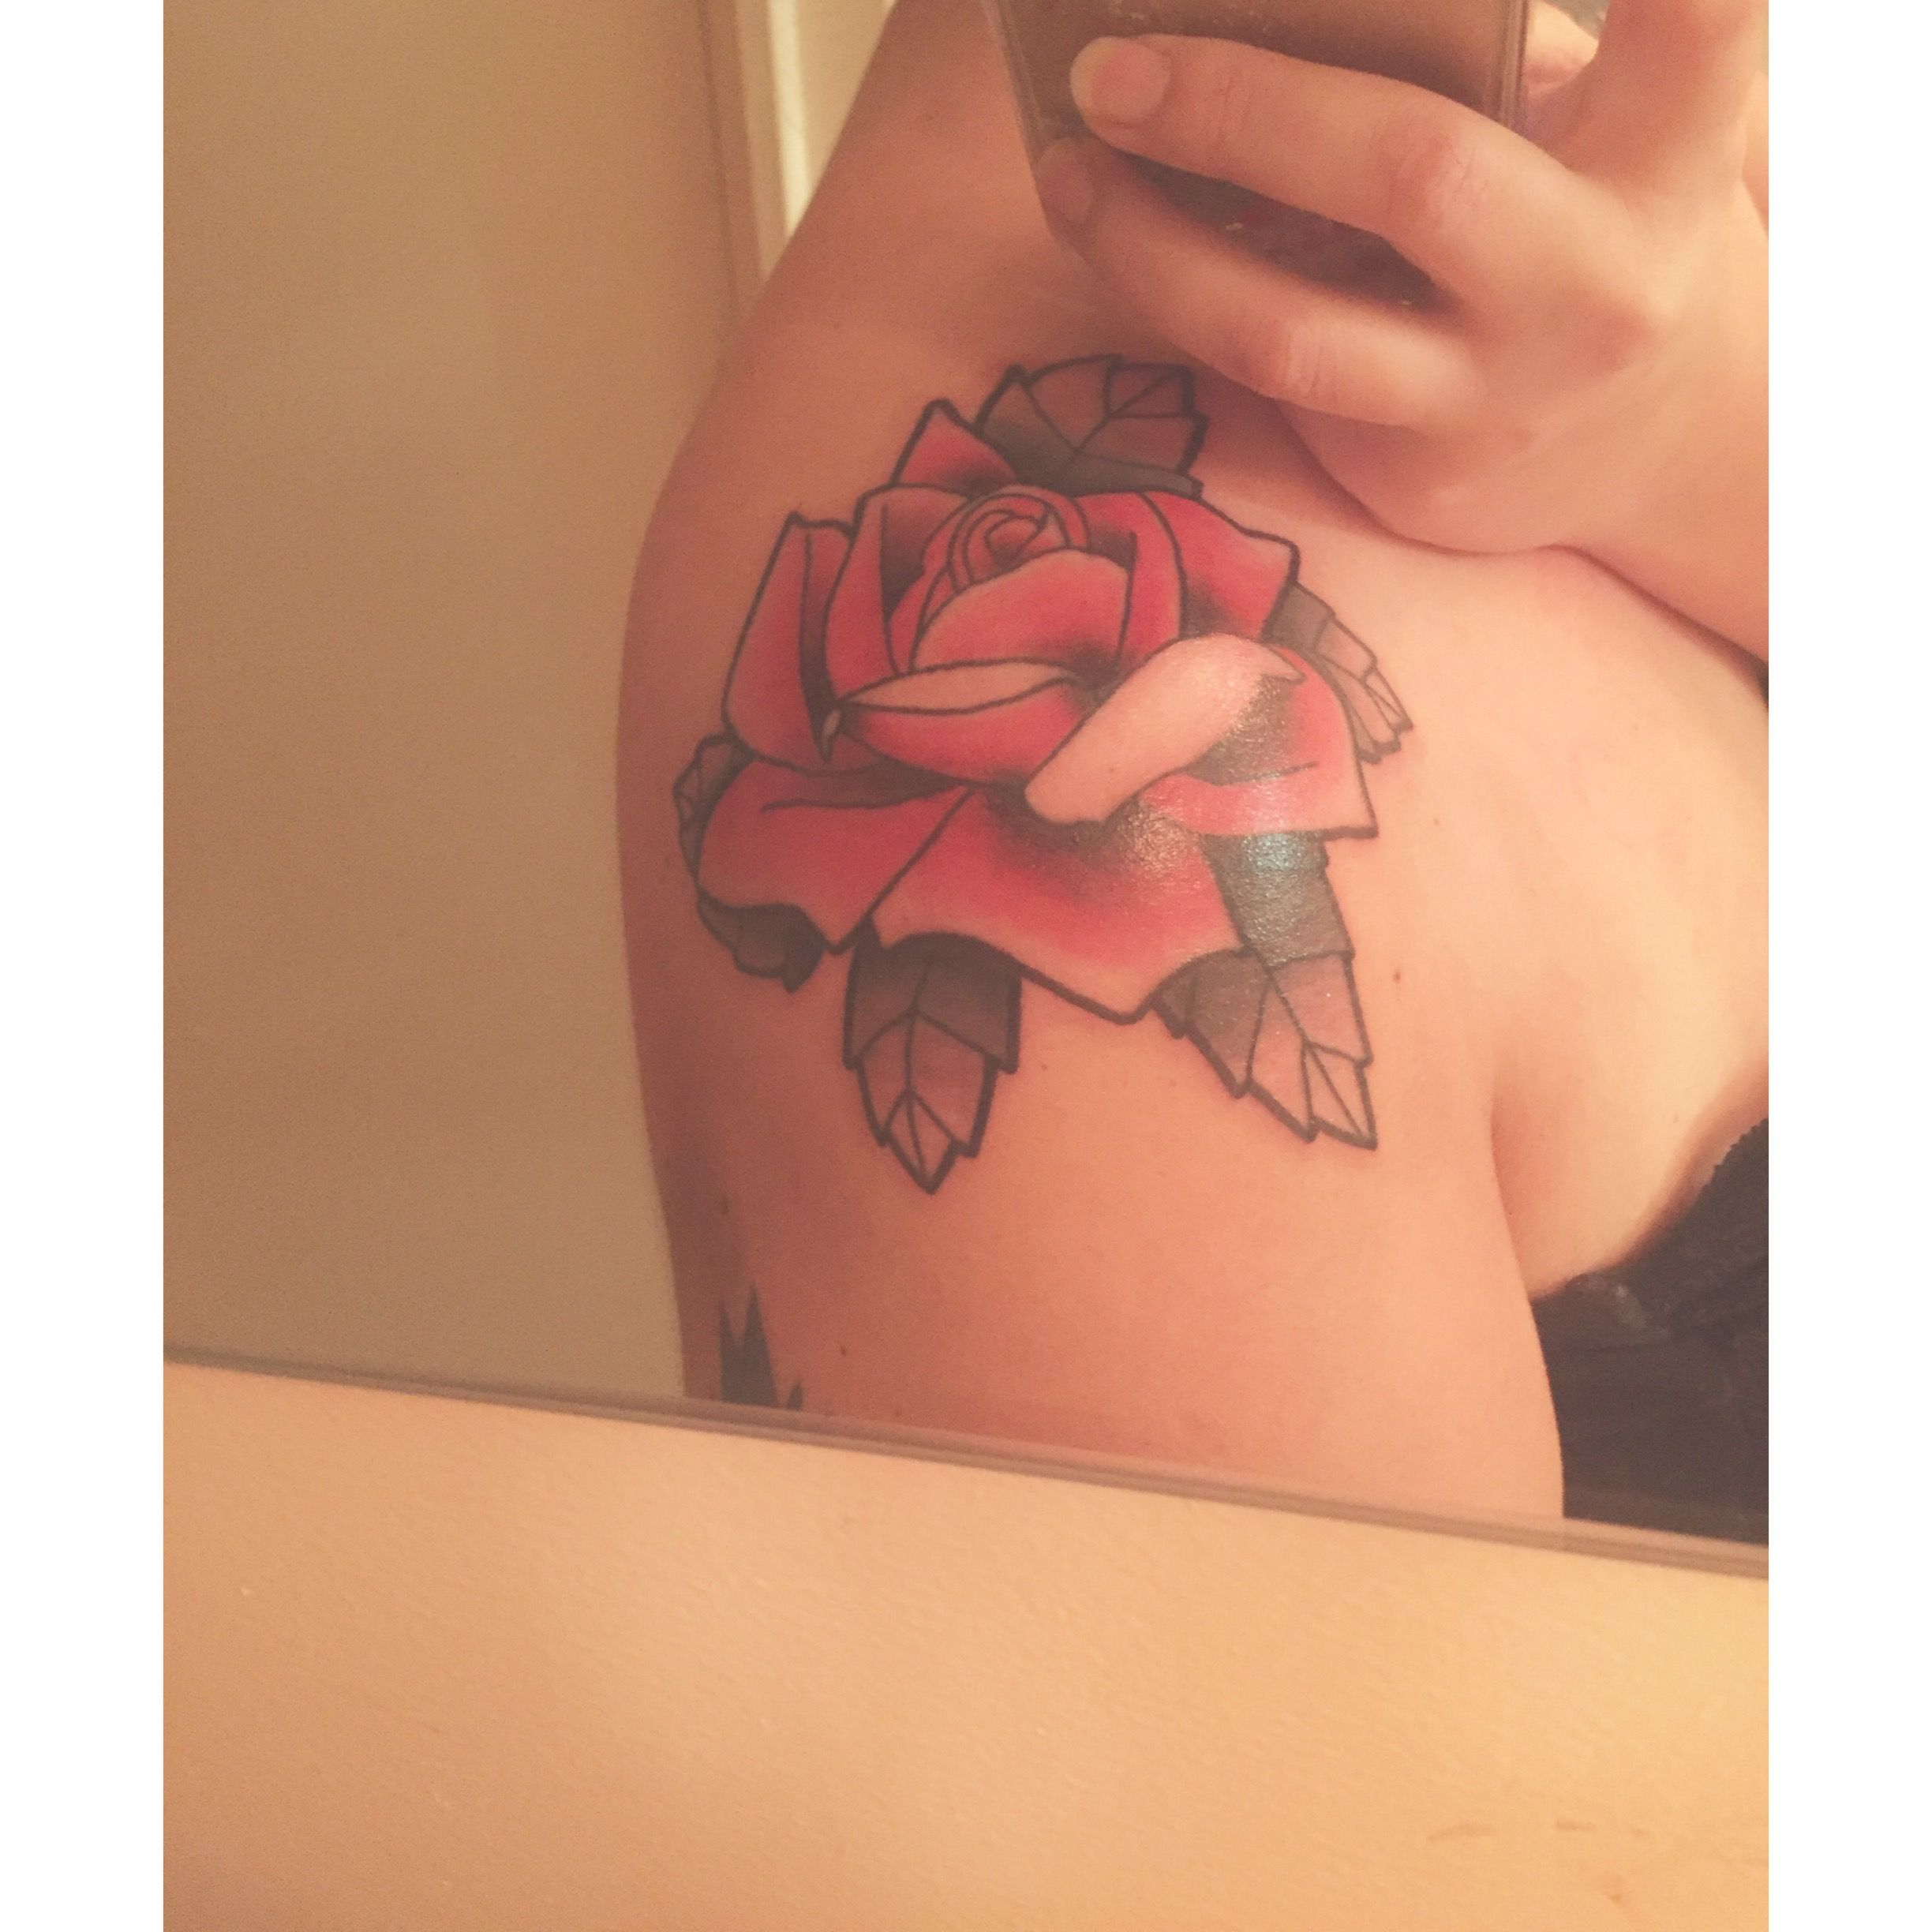 Black and red rose tattoo on shoulder rose tattoo red passion